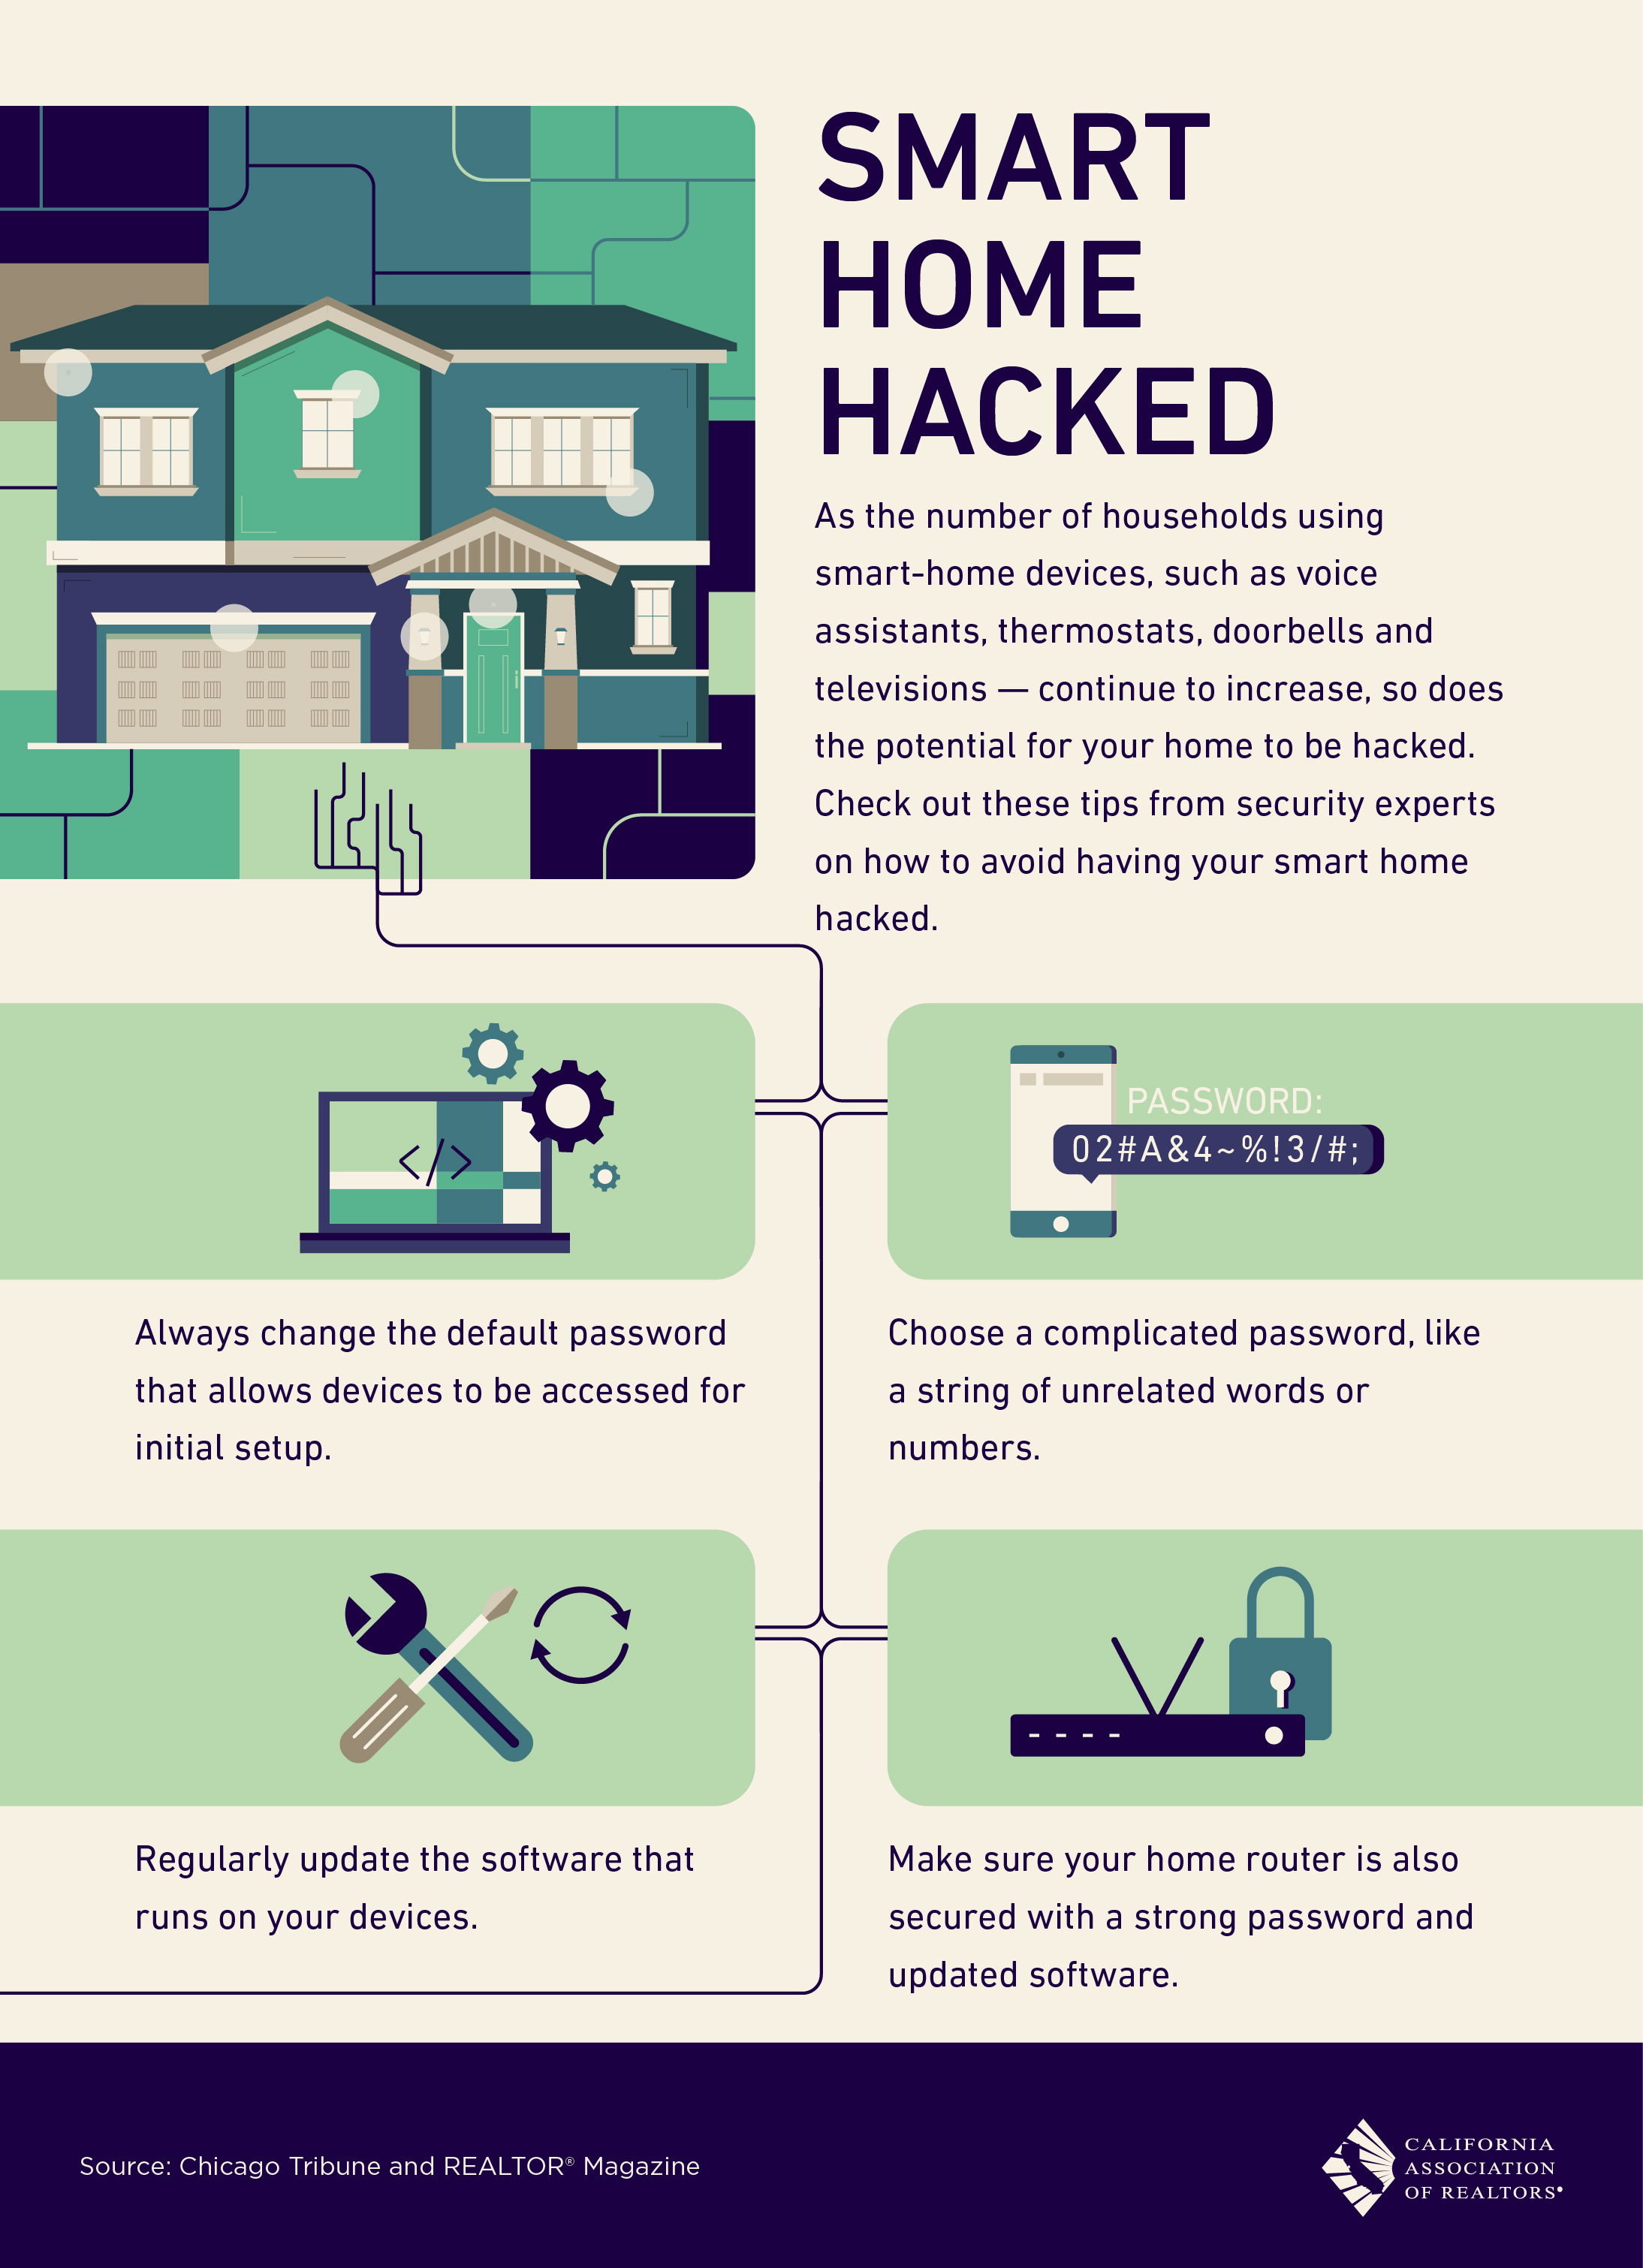 How likely is it that your smart home be hacked?